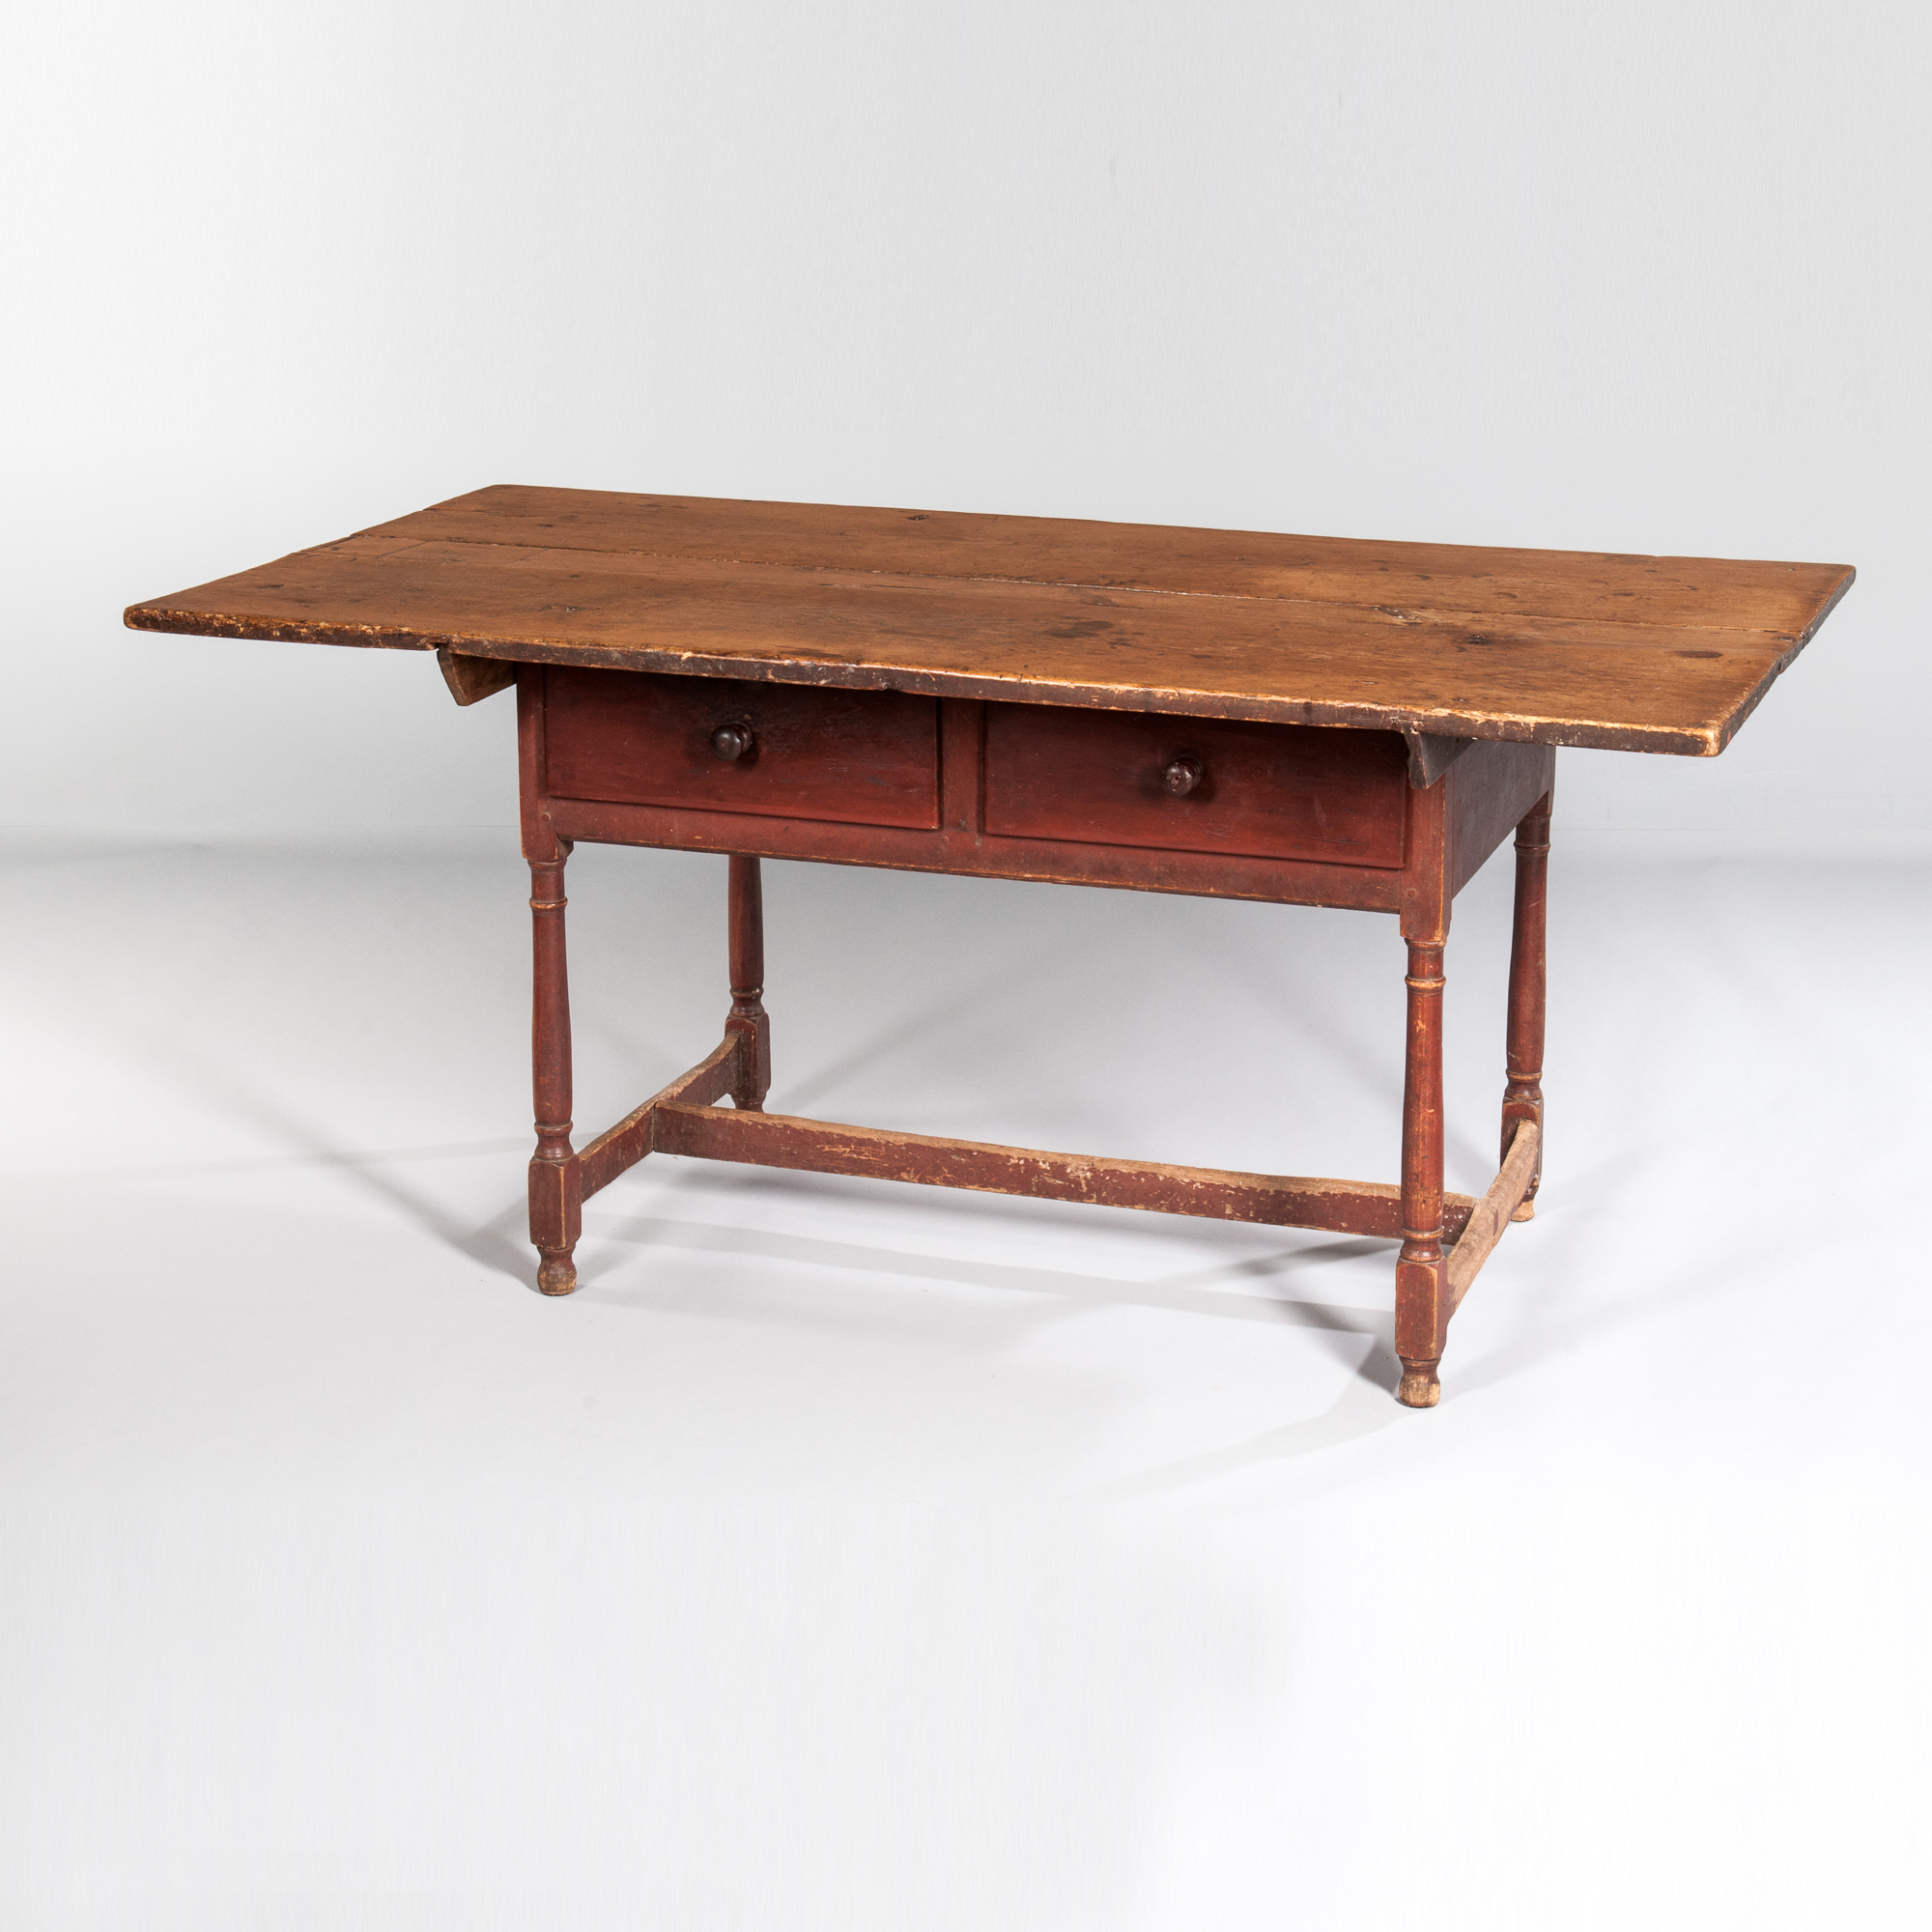 Large Tavern Table with Two Drawers, Massachusetts, New England, 18th century (Lot 308, Estimate: $1,000-1,500)